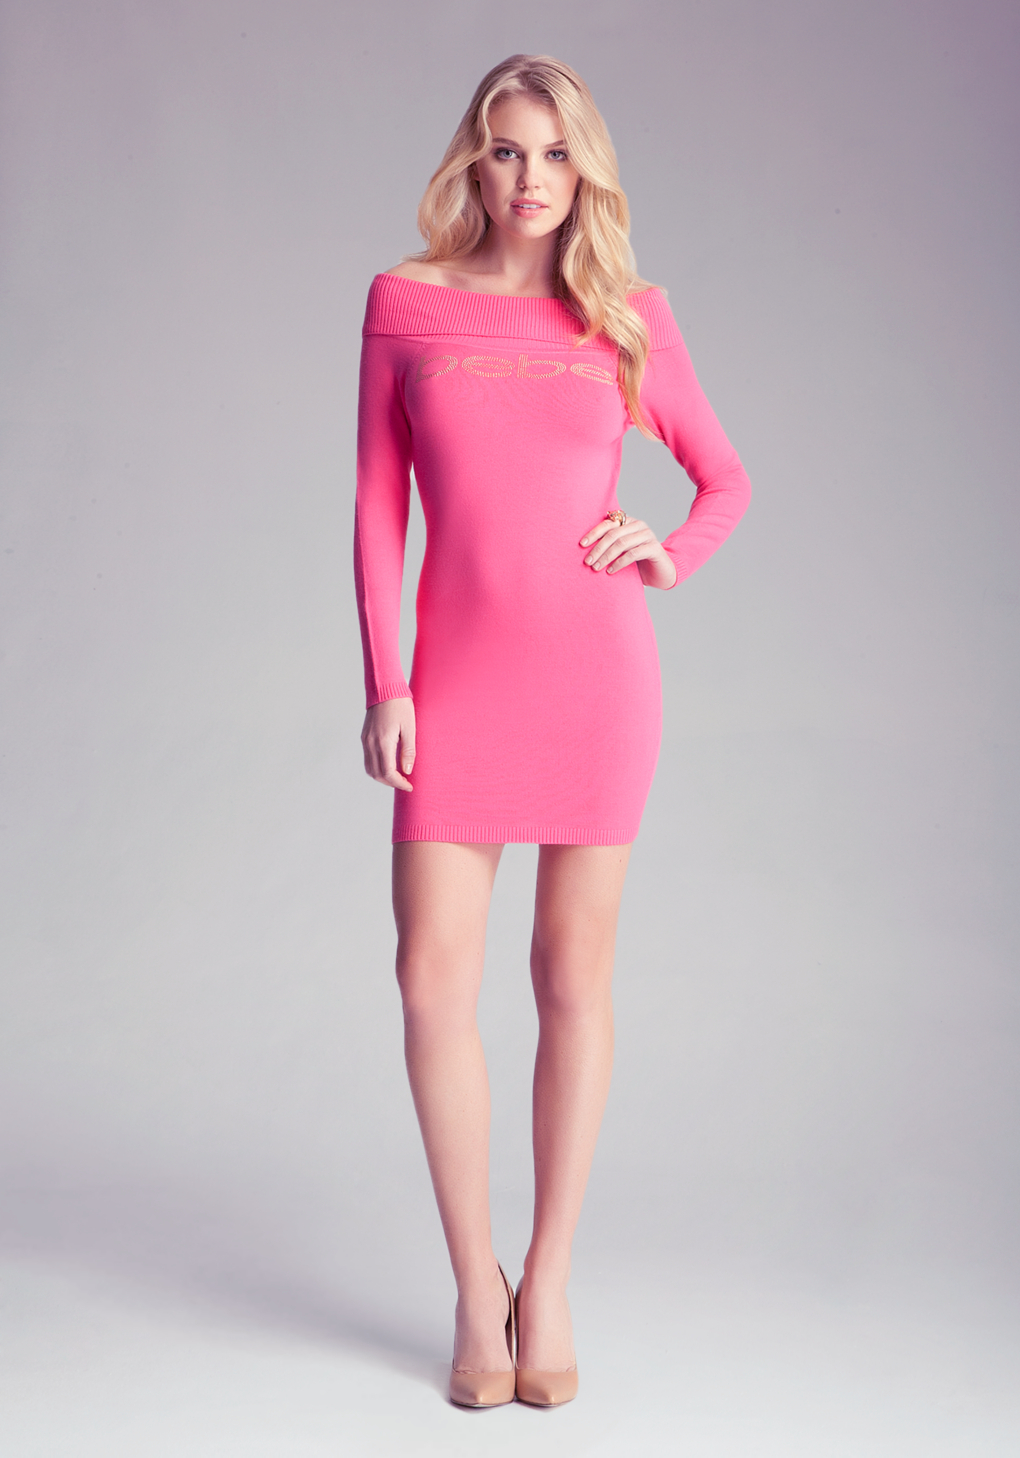 Bebe Off Shoulder Sweater Dress in Pink | Lyst